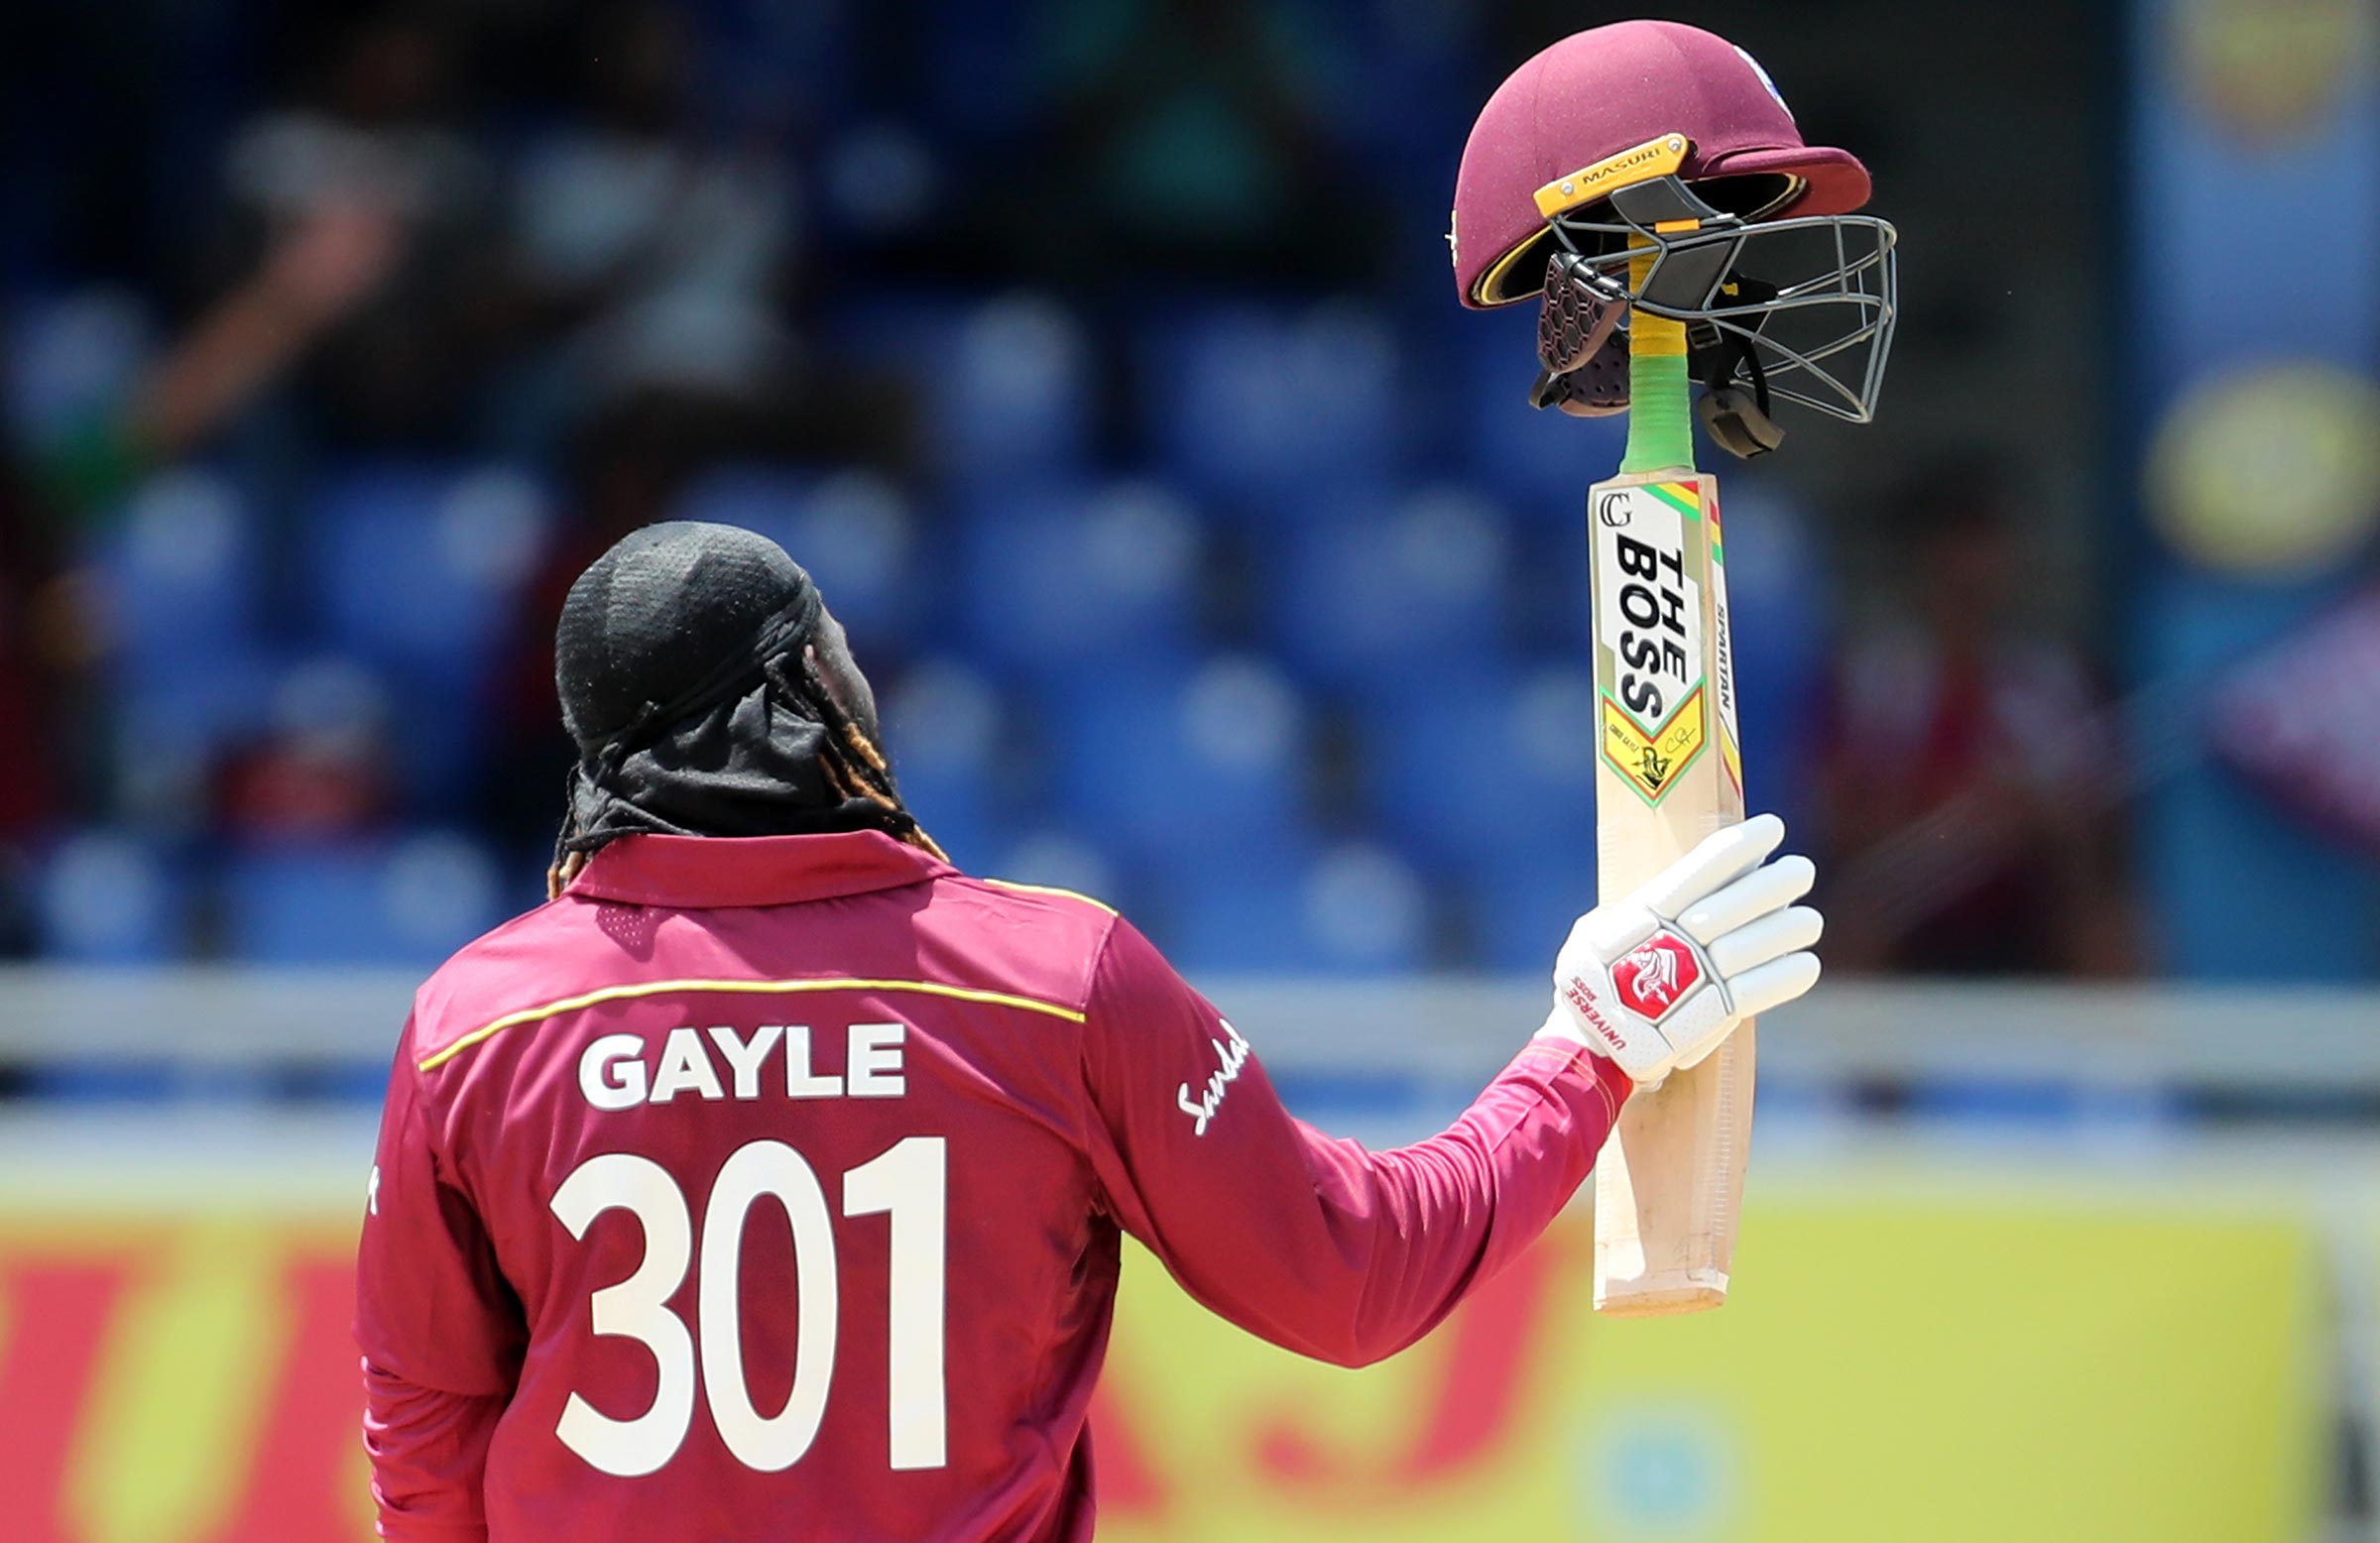 Gayle acknowledges the crowd in Trinidad // Getty